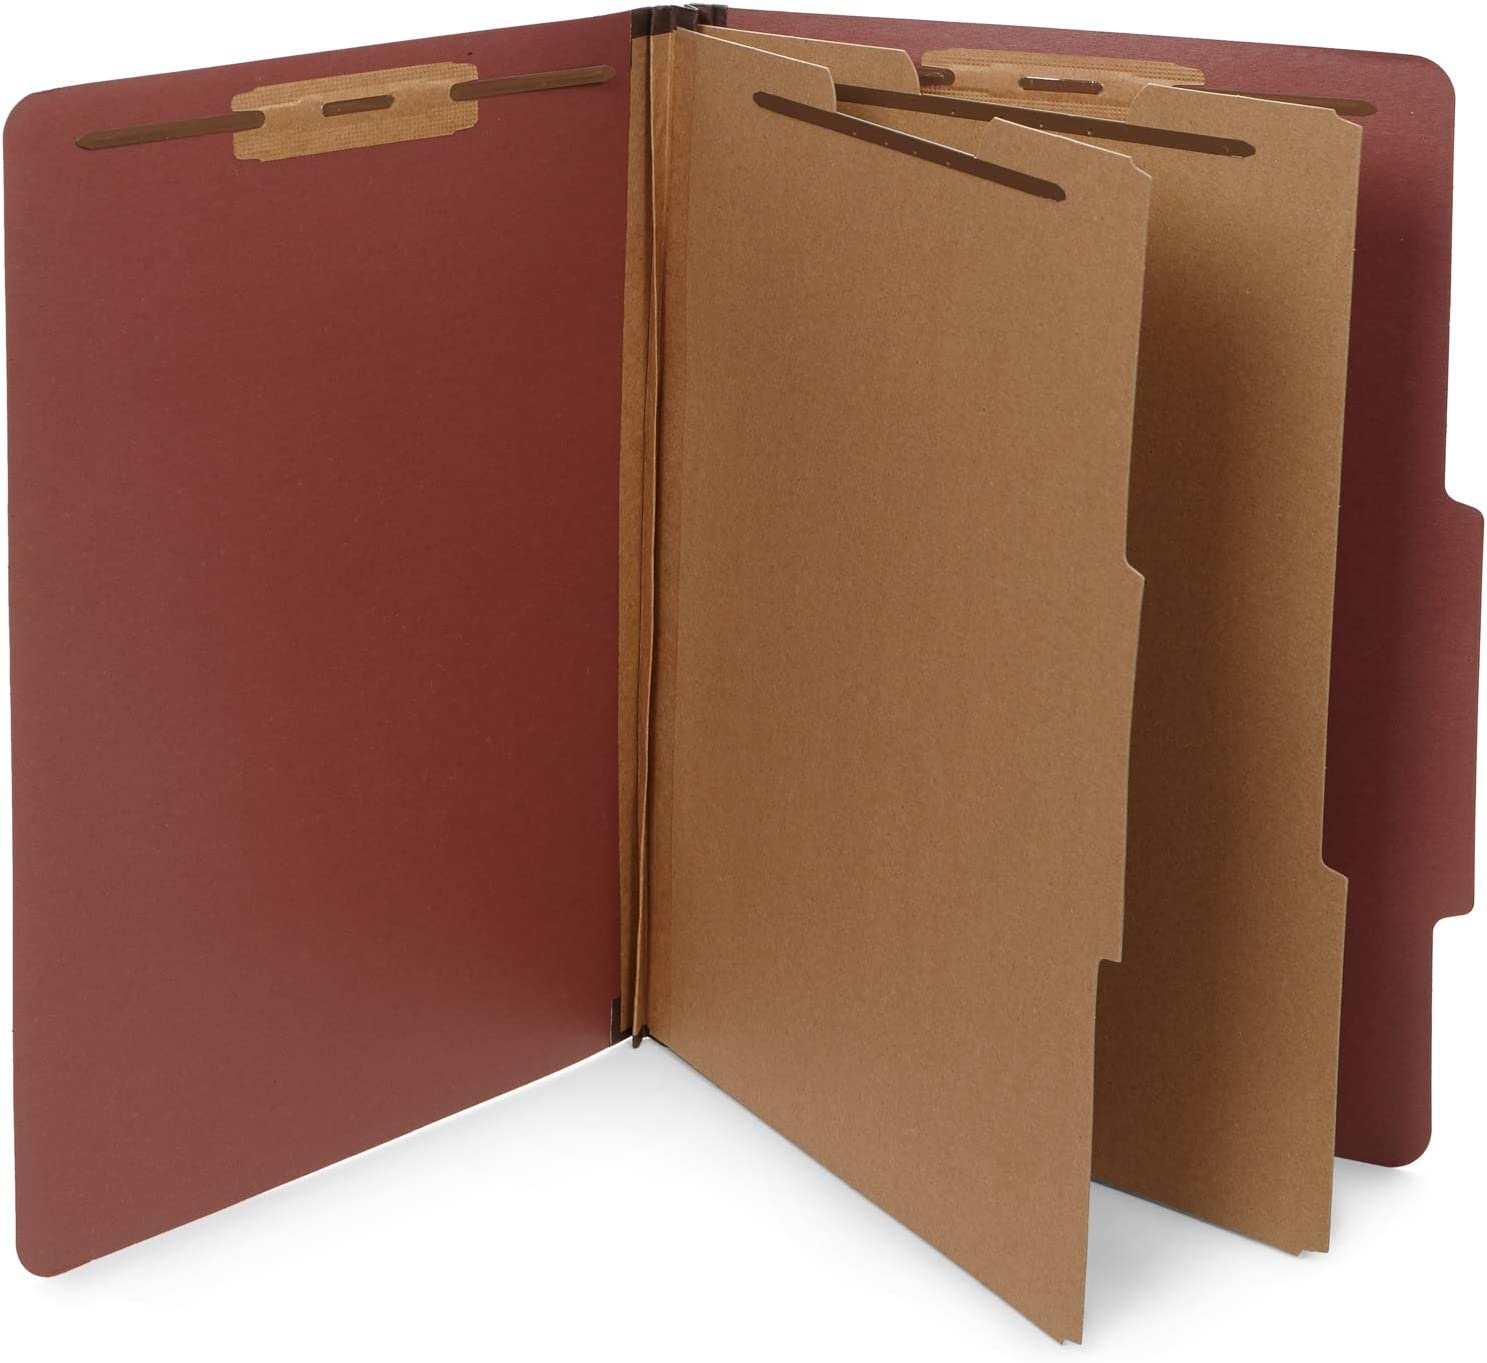 10 Legal Size Classification Folders - 2 Divider - 2 Inch Tyvek Expansions - Durable 2 Prongs Designed to Organize Standard Law Client Files, Office Reports - Legal Size, 10 Folders (Red) 71eElPddUkL